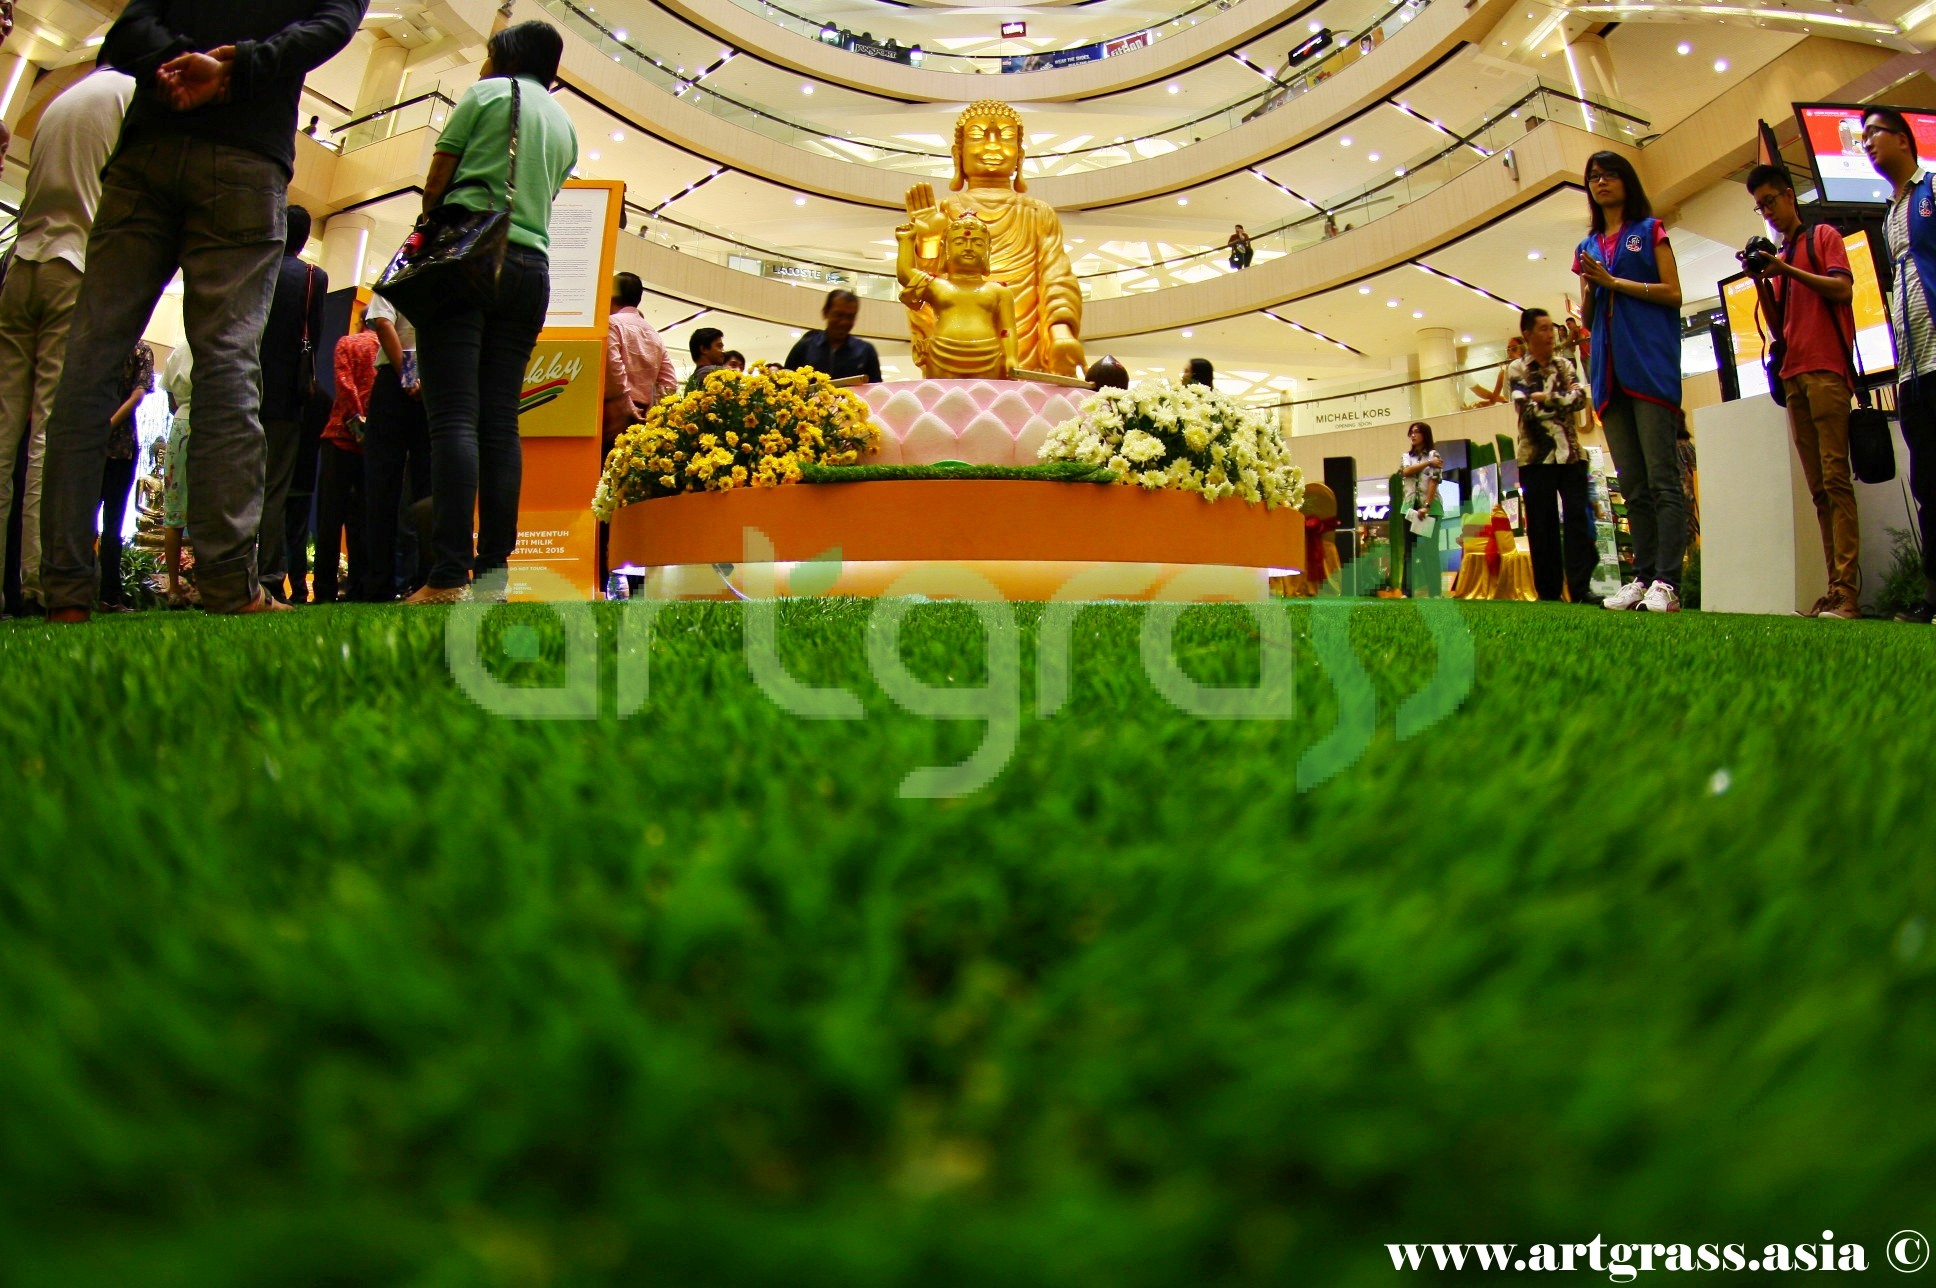 ArtGrass-At-Vesak-Festival-2015-Main-Atrium-Tunjungan-Plaza-28Mei-2015-Bottom-Center